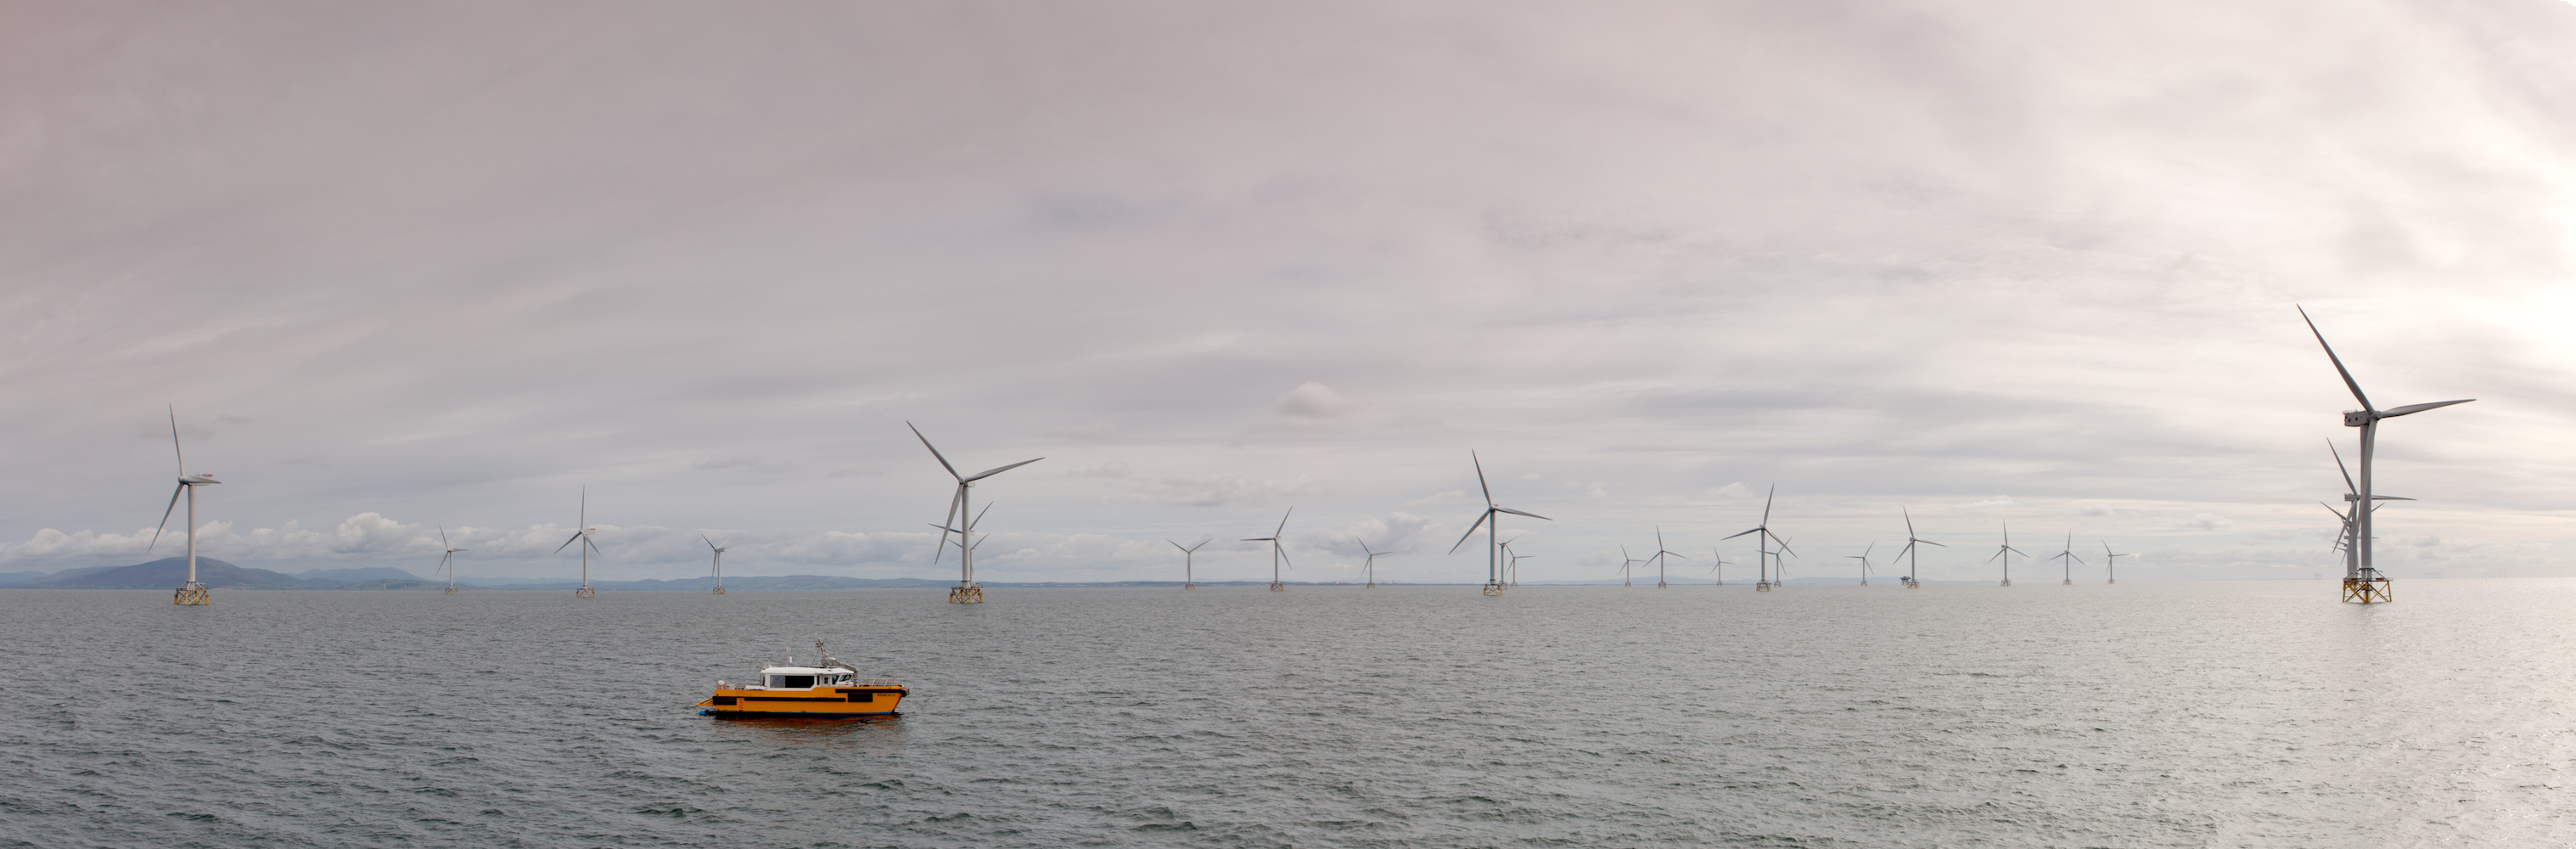 Ormonde offshore wind farm - project image (Ben Barden photography - 29).jpg